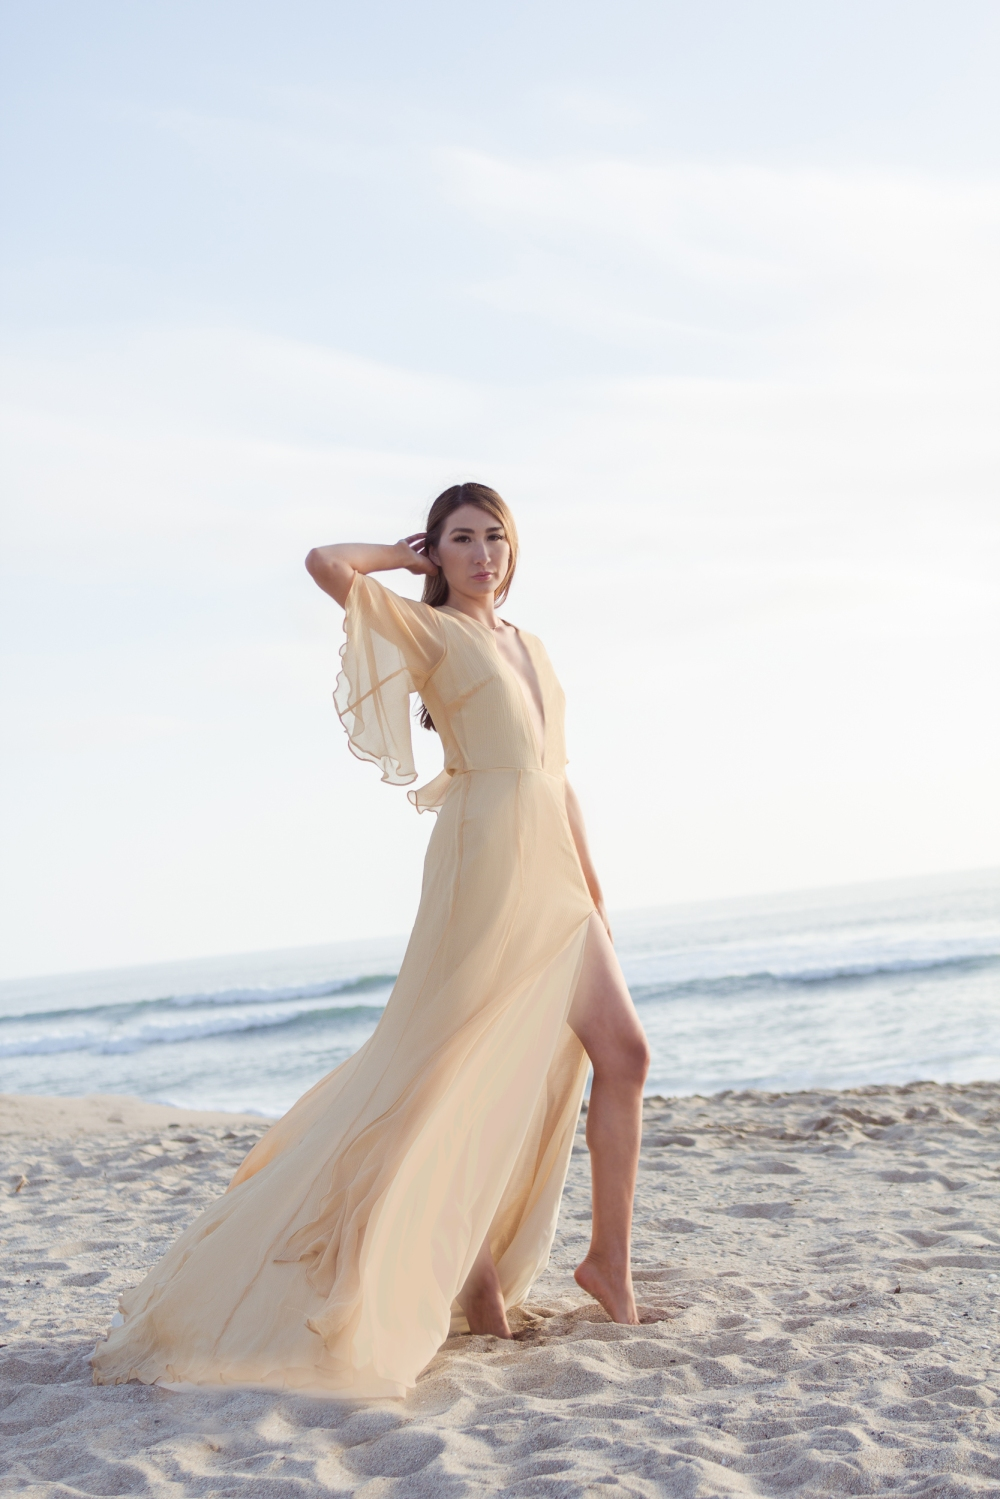 Of the Sea Half Moon Bay Alyssa Nicole Silk Gown3.jpg